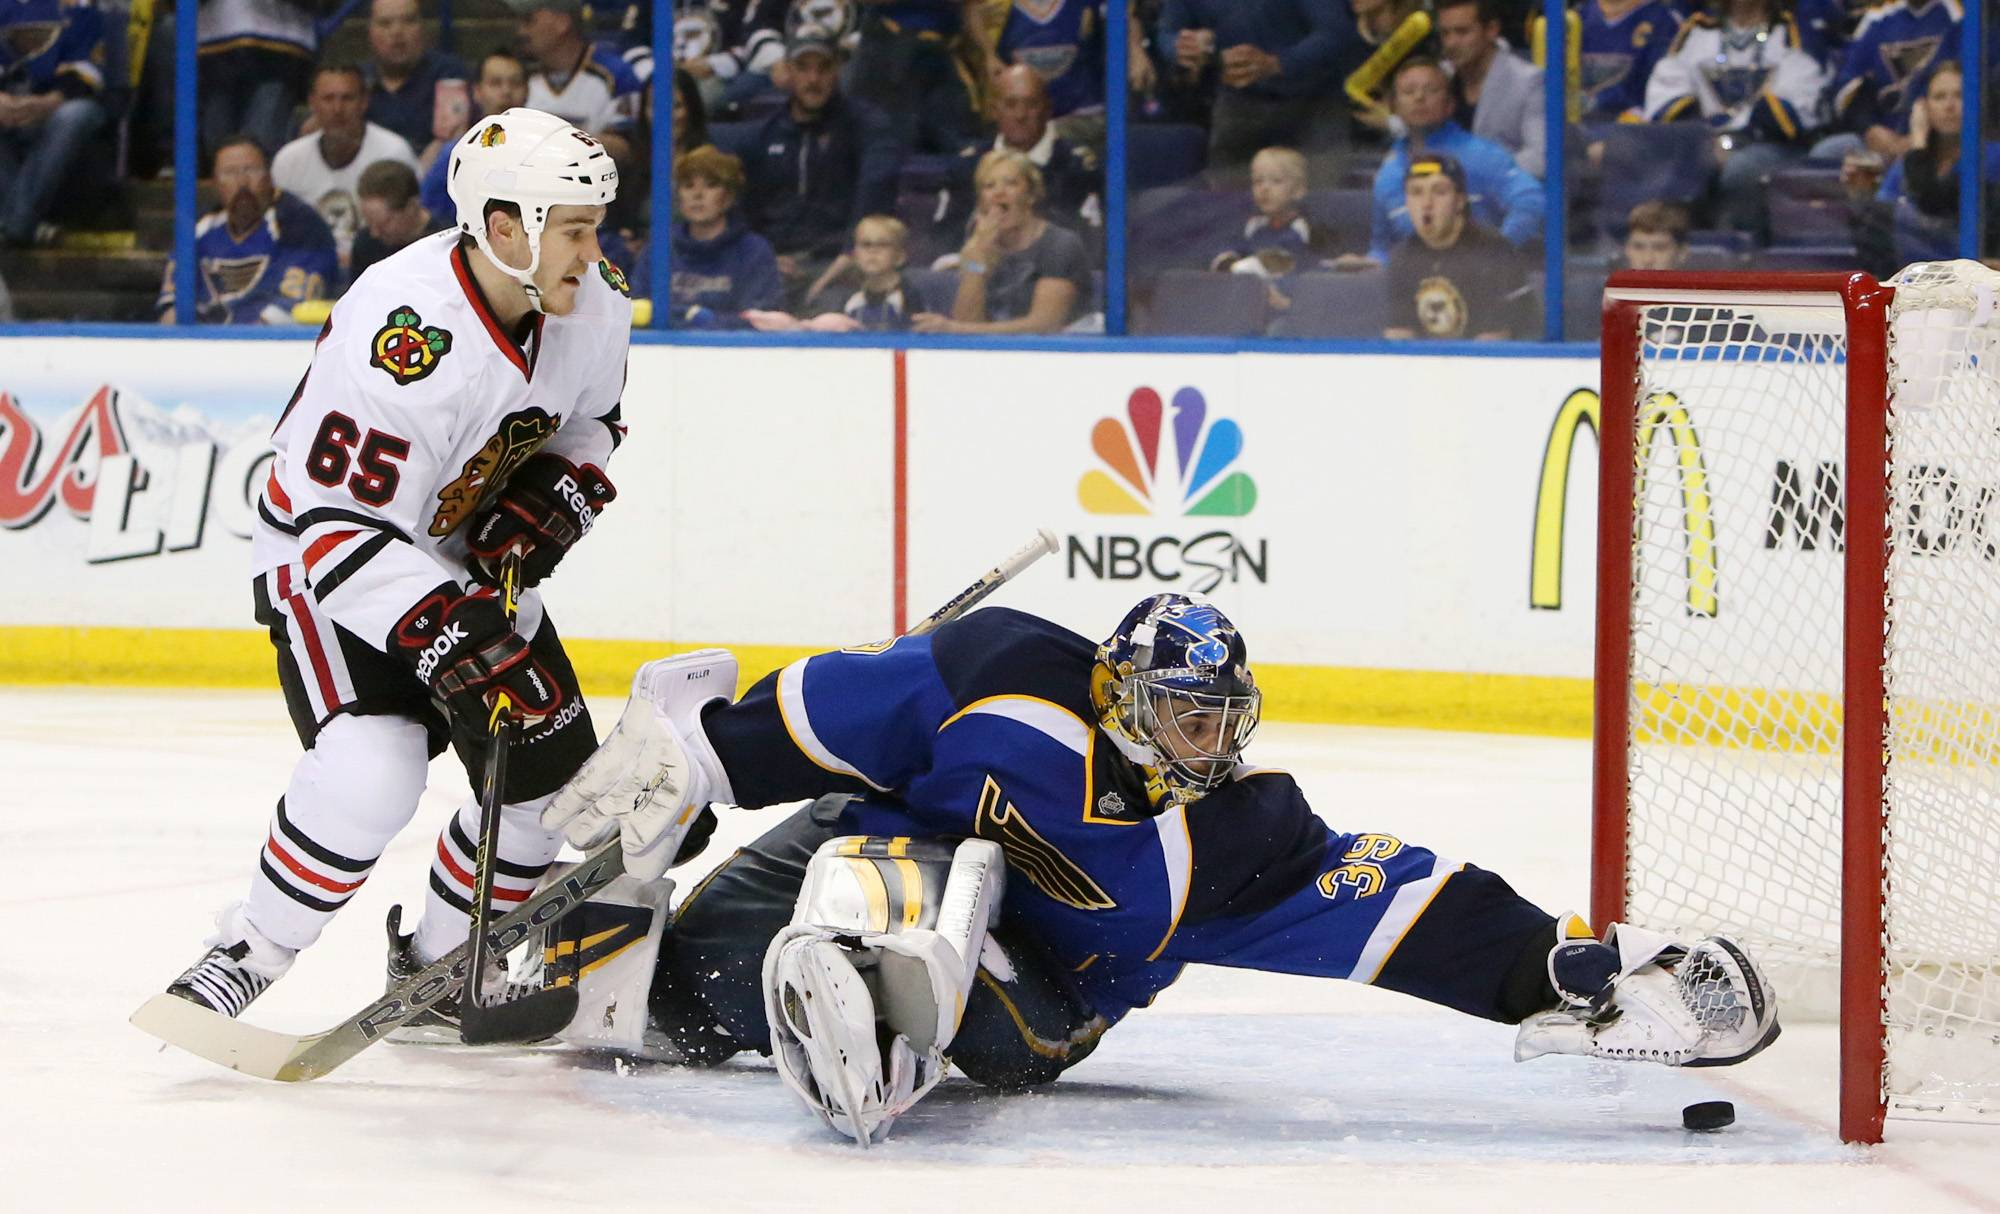 Blues goaltender Ryan Miller reaches back just in time to prevent a goal as Blackhawks center Andrew Shaw pressures in second-period action during Game 5 of a Western Conference quarterfinal game Friday night.